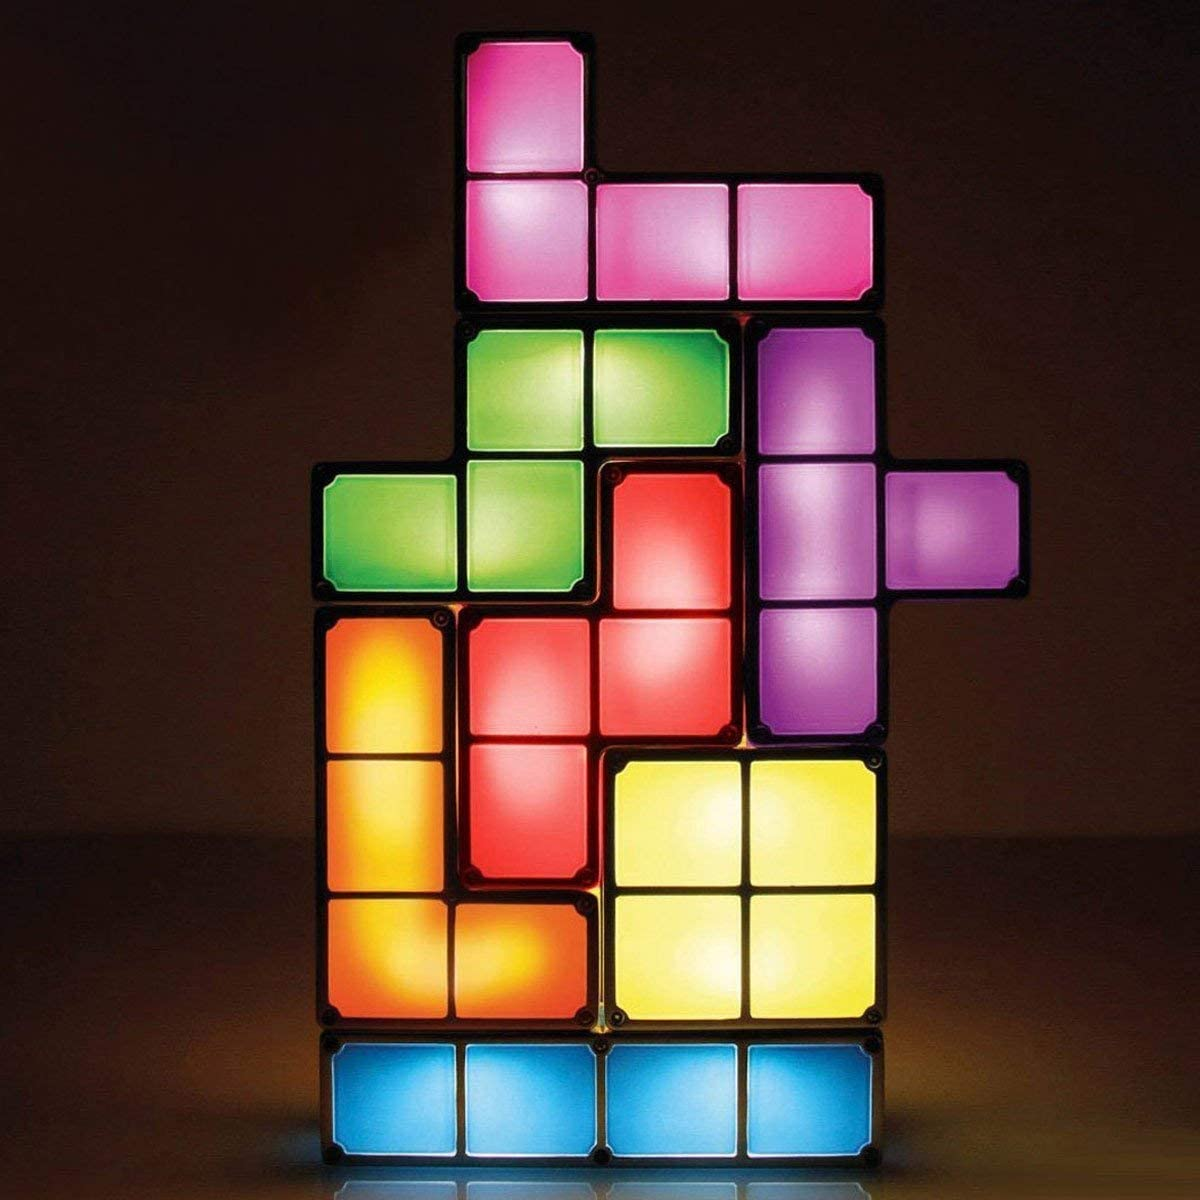 Stackable Night Light,Puzzle Lamp,7 Colors Induction Interlocking Lighting Blocks,DIY Tangram Desk Light,Led Cube,Great Gift Stem Light for Teens and Adults Kids Christmas Gift